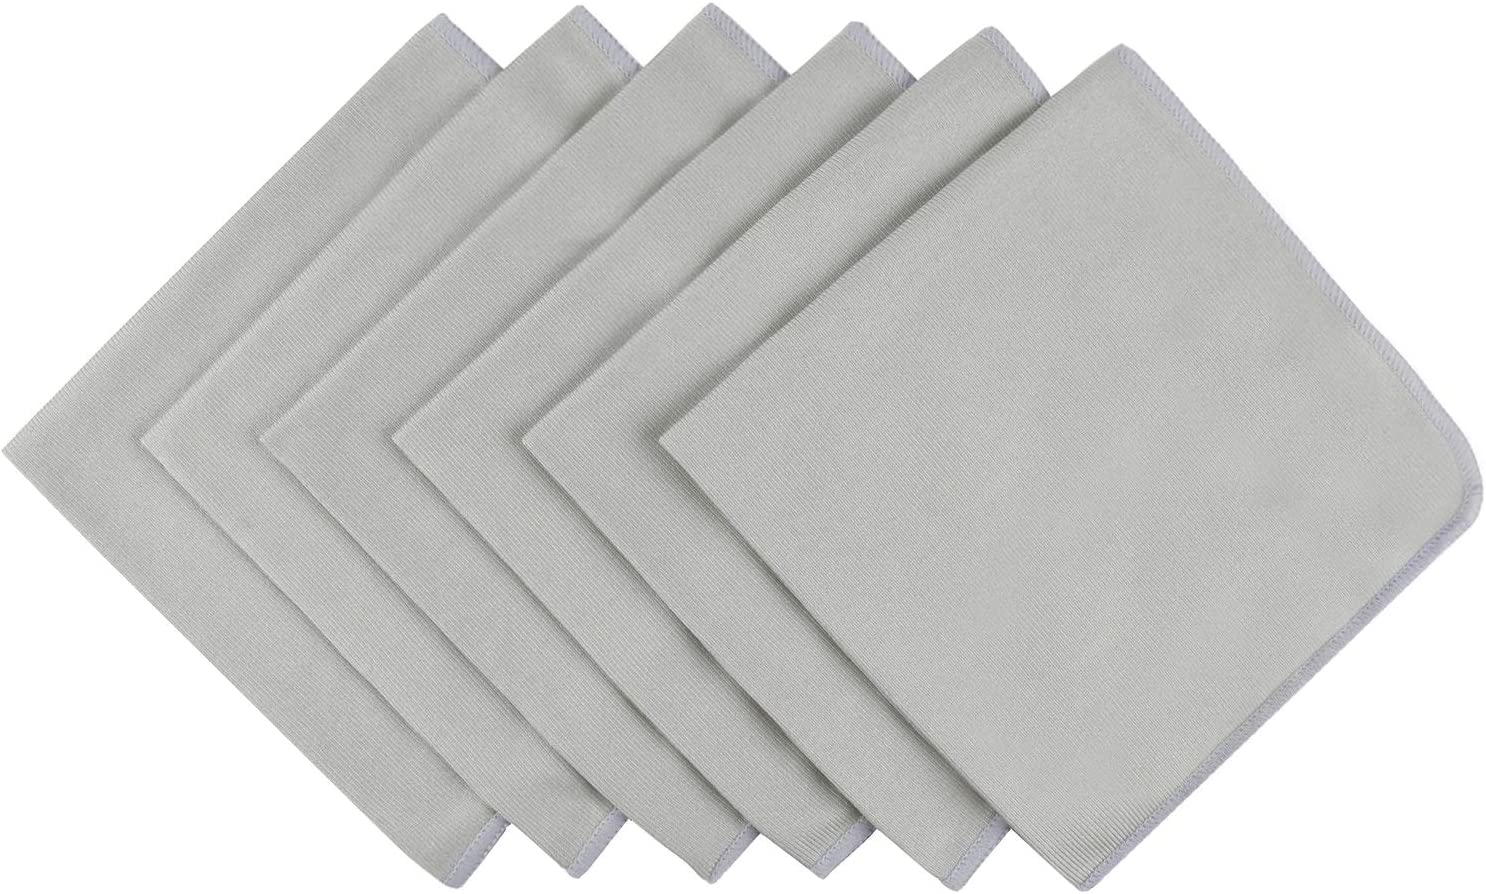 Microfiber Lint Free Rags Glass Window Cleaning Cloths Scratch Free Polishing Cloths for Glassware Dishes Car Stainless Steel Appliances Mirrors Screens Camera Lenses etc 16Inch x 16Inch 6 Pack Grey